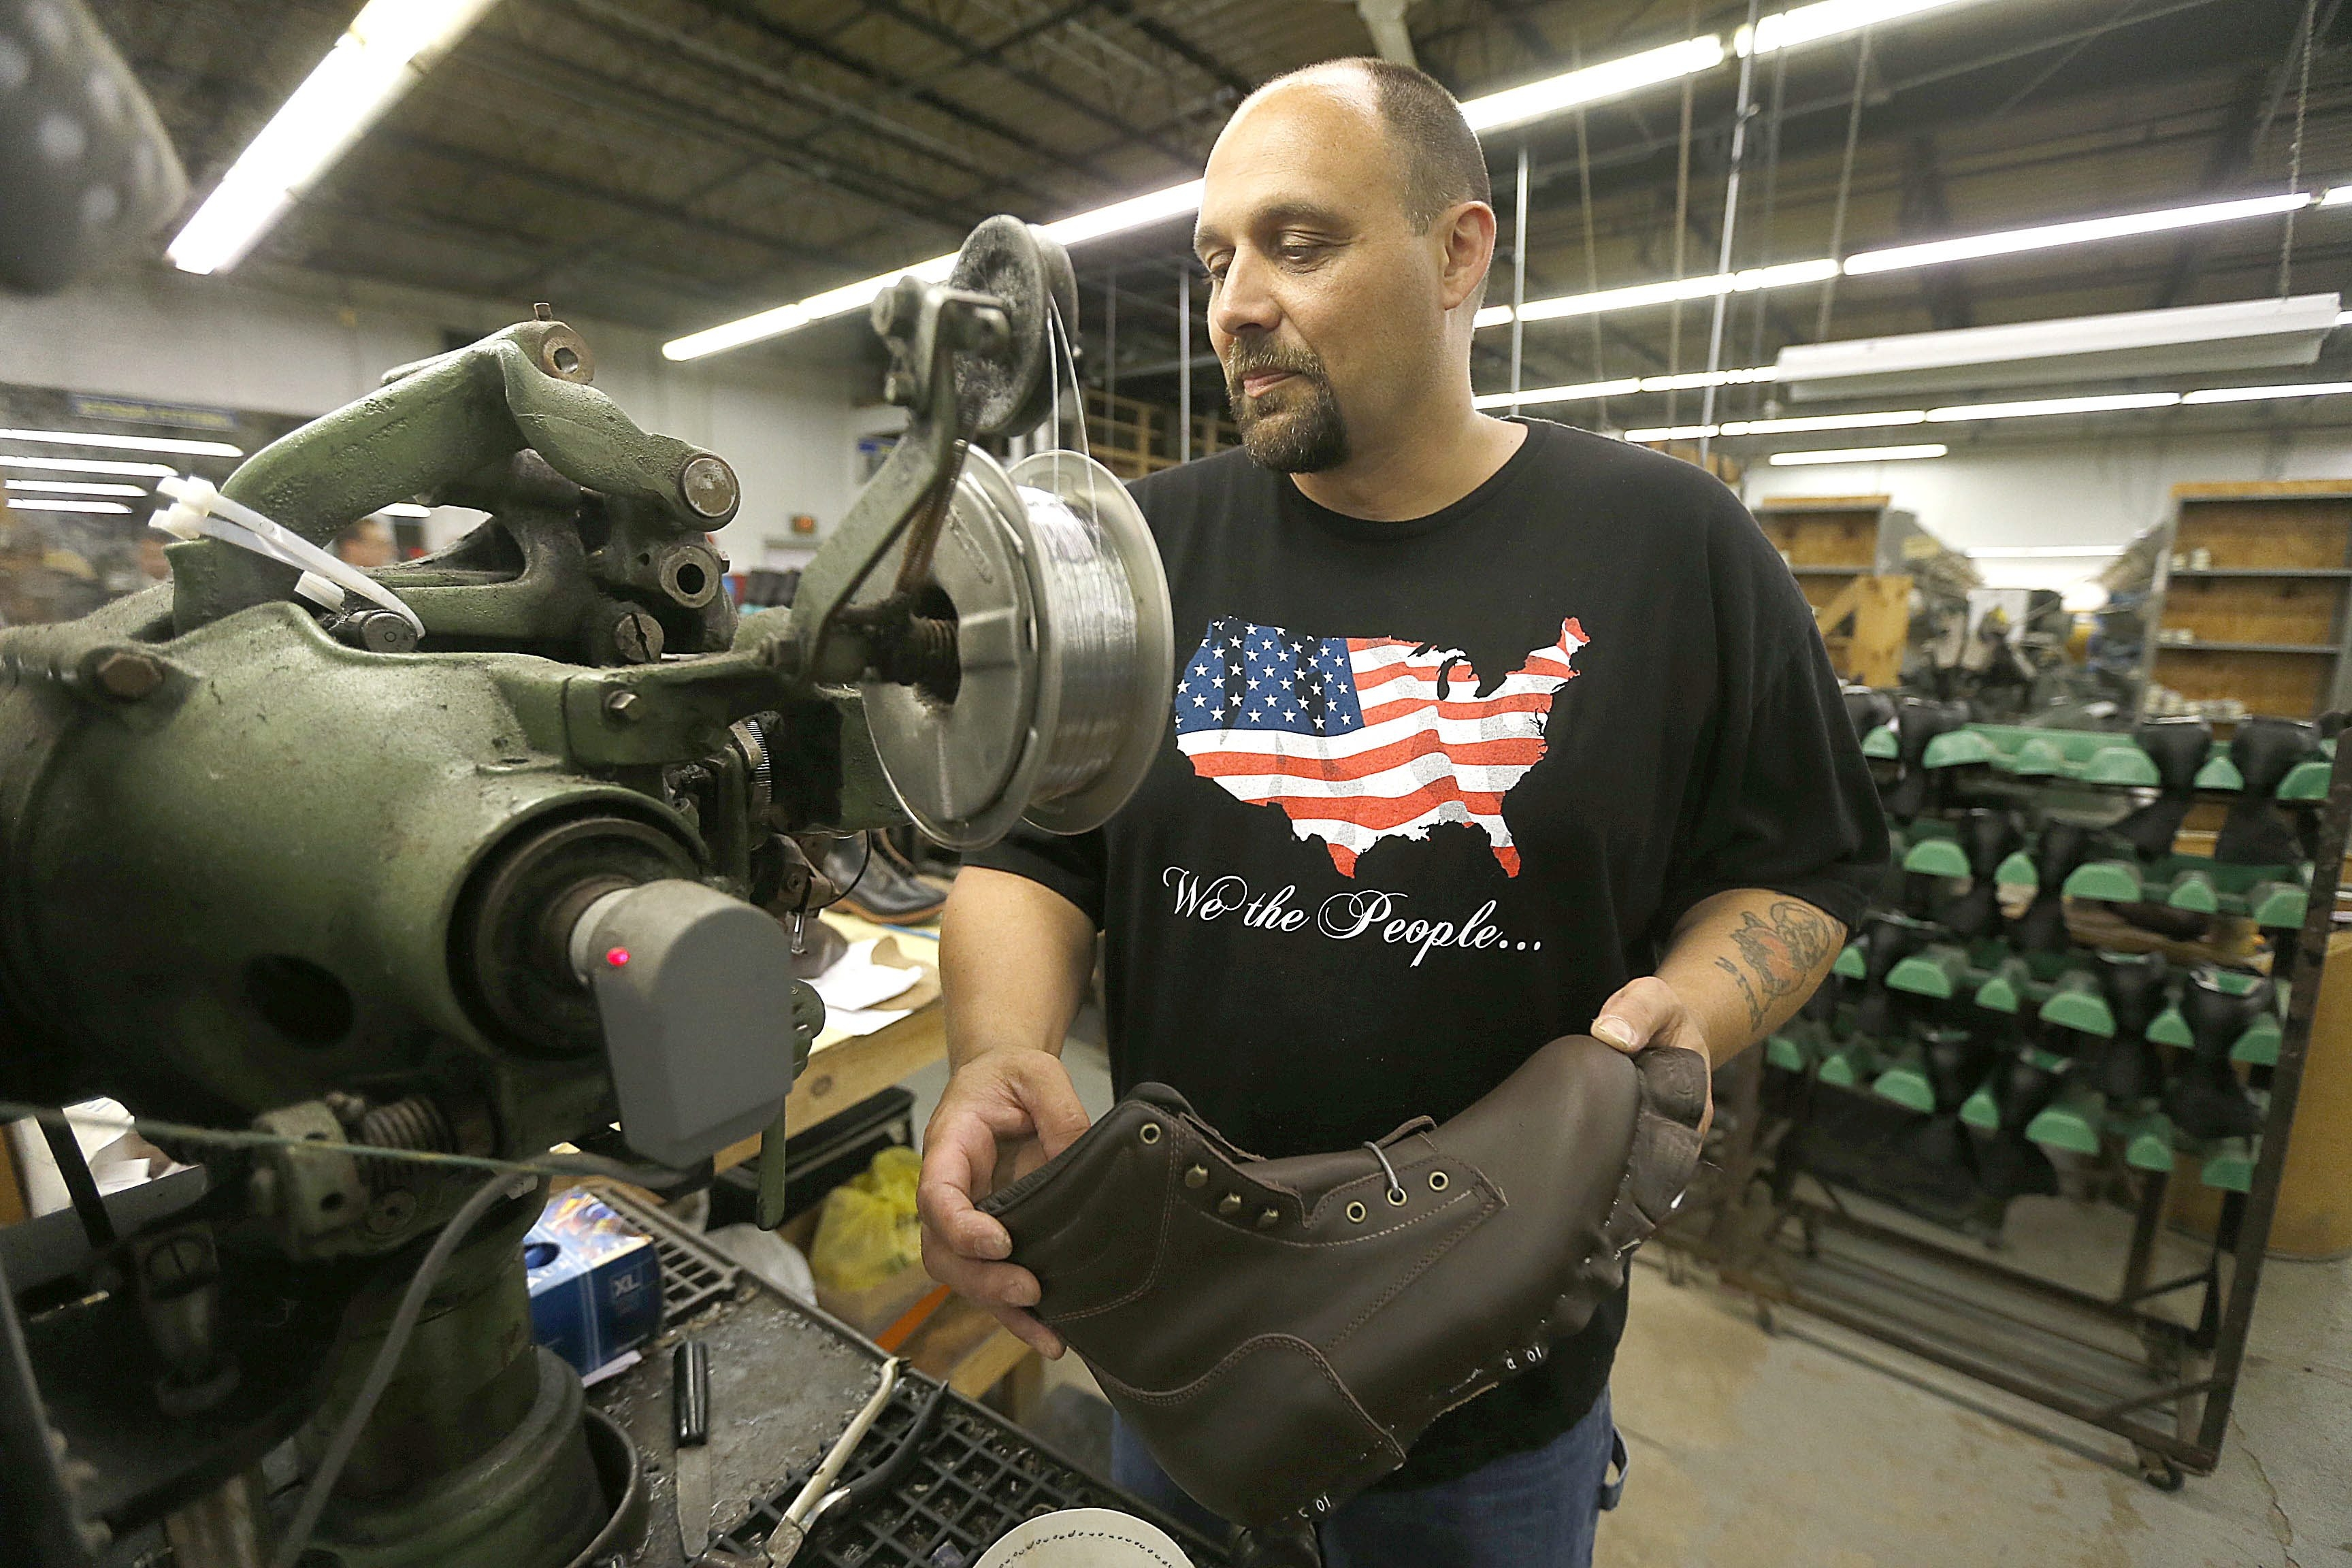 Christopher Hall, one of the six dozen employees facing job loss after the June announcement that P.W. Minor & Sons would close, finishes boots at the Batavia factory as a change in ownership has energized the workers and the community about a better future.